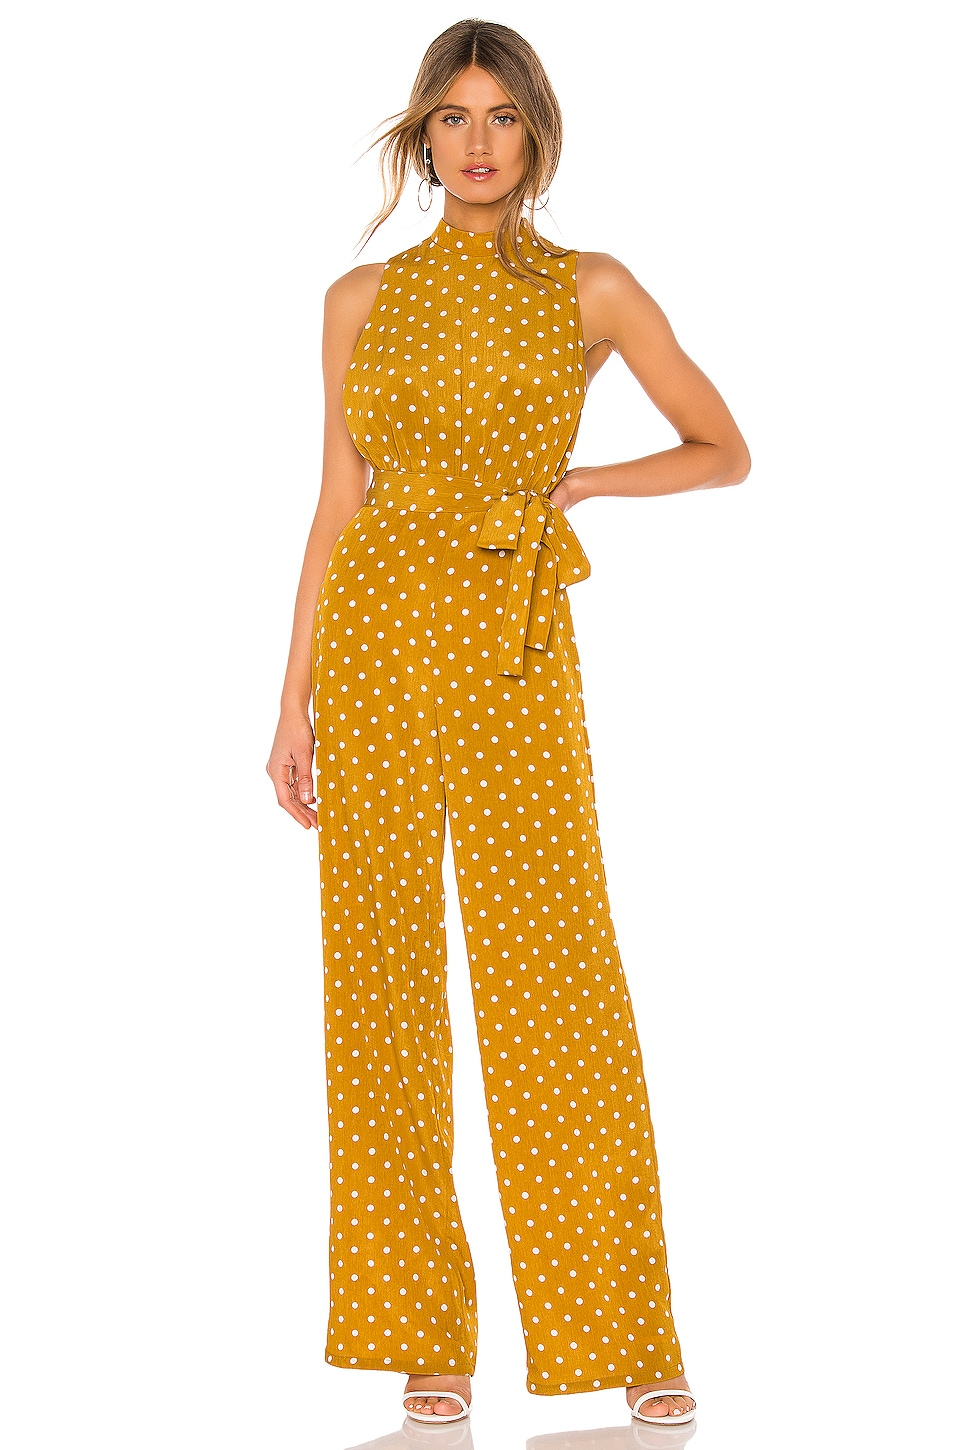 MAJORELLE Fili Jumpsuit in Yellow Dot